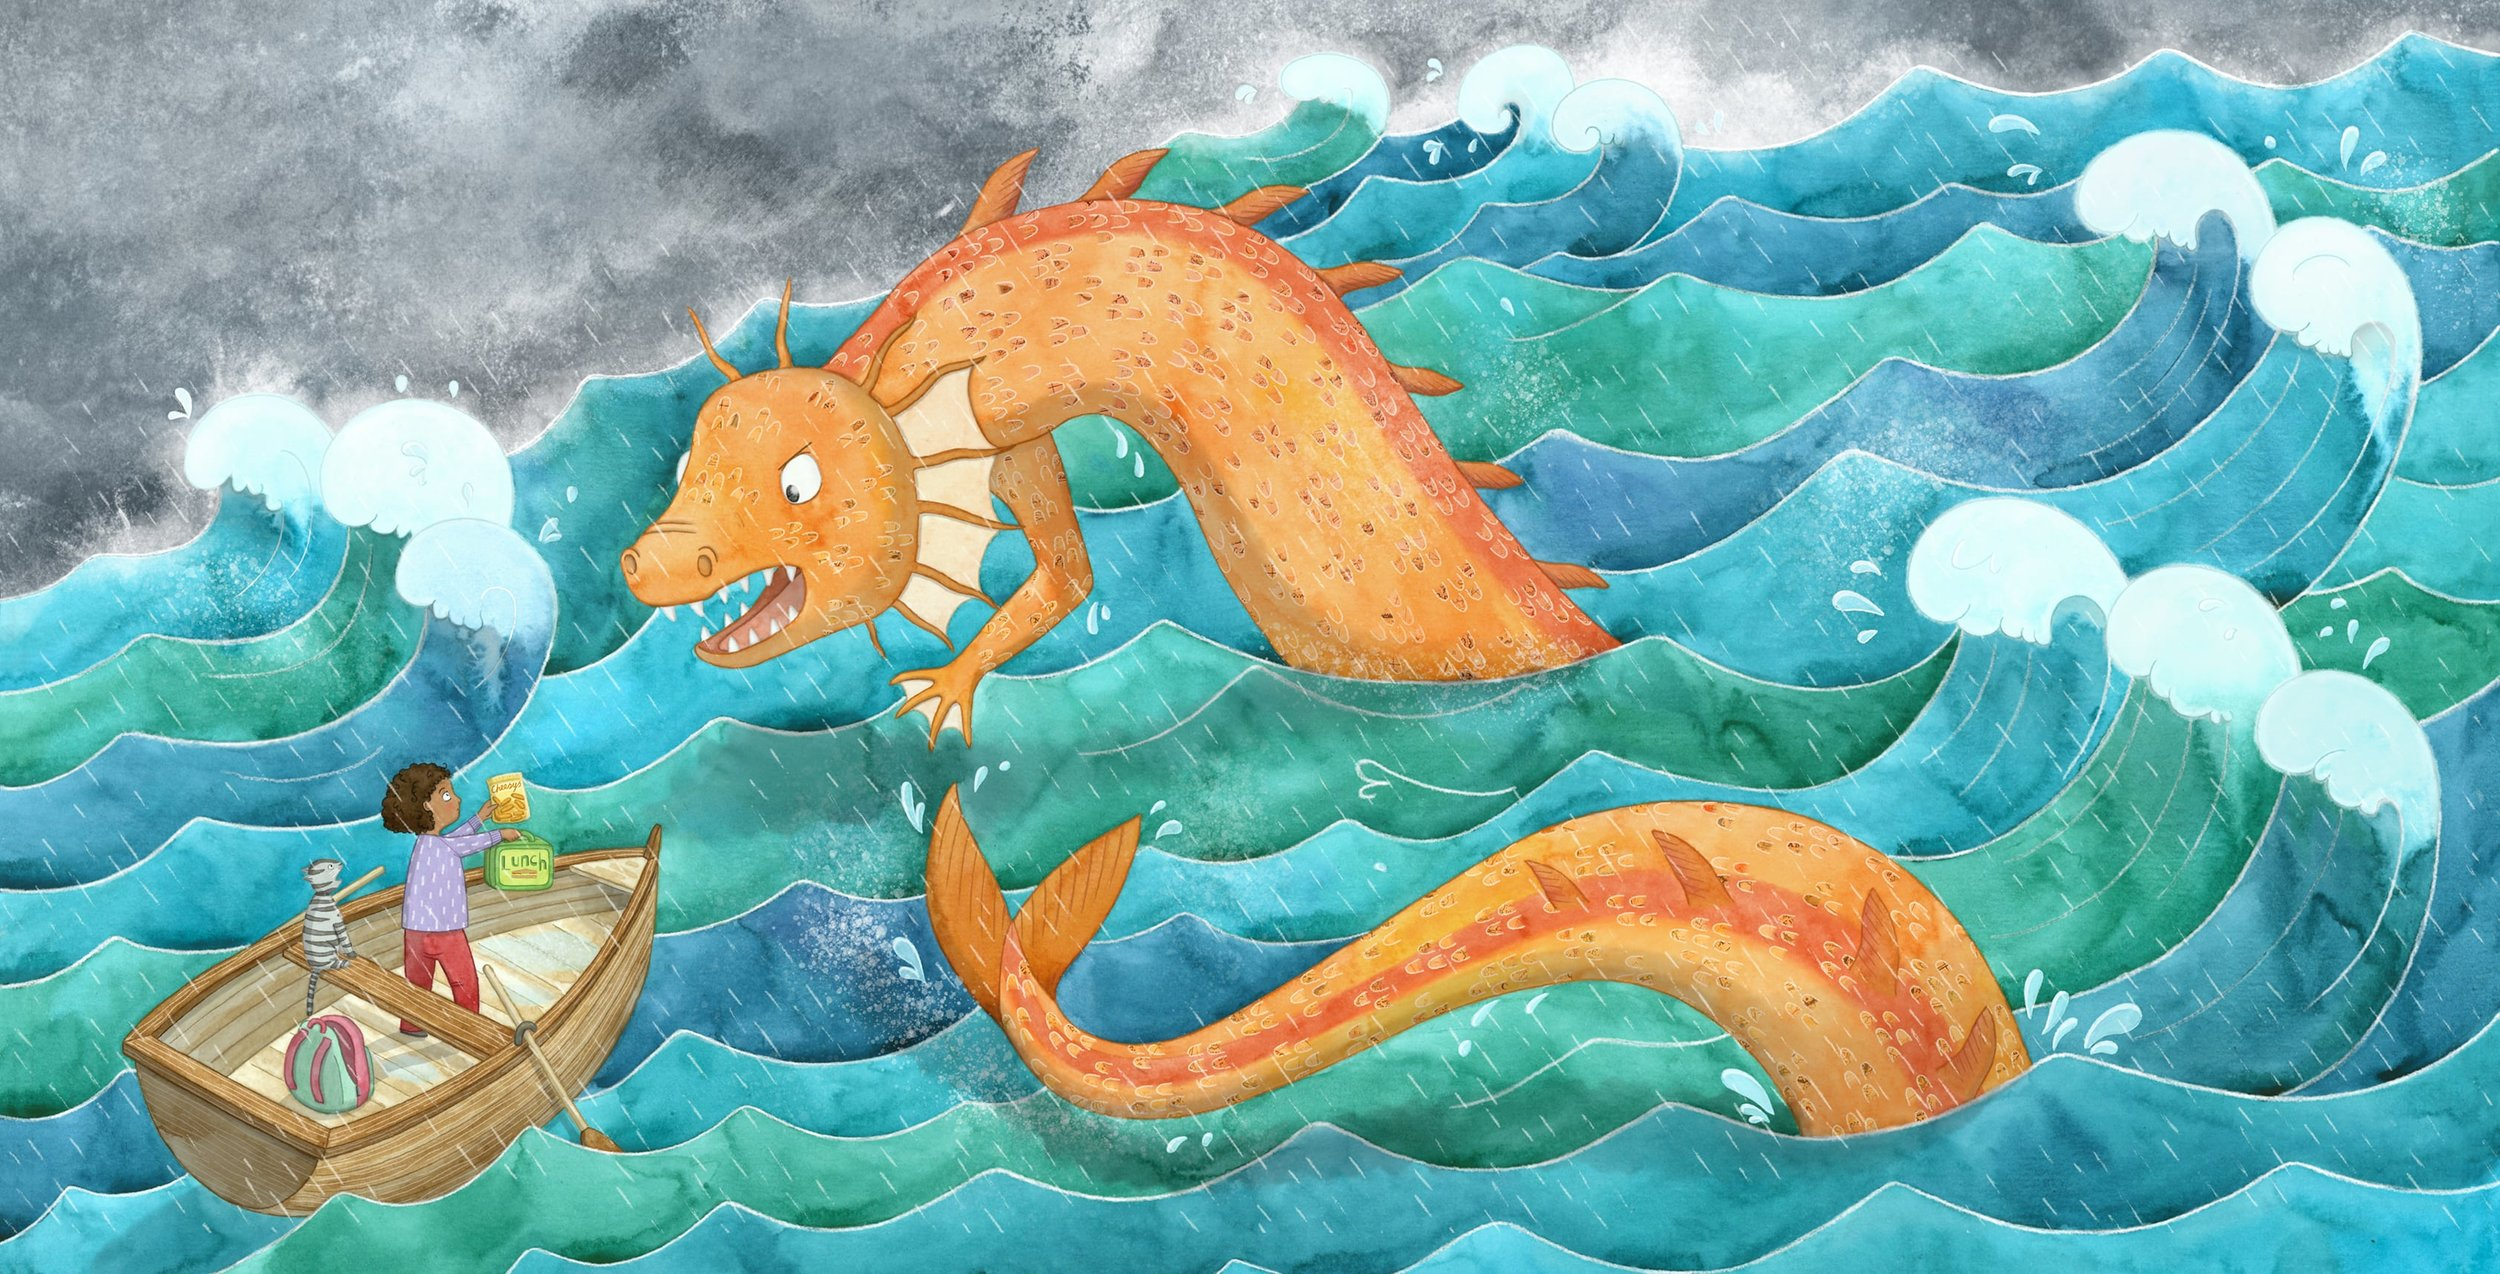 Image: Sea Serpent by Lucy Farfort